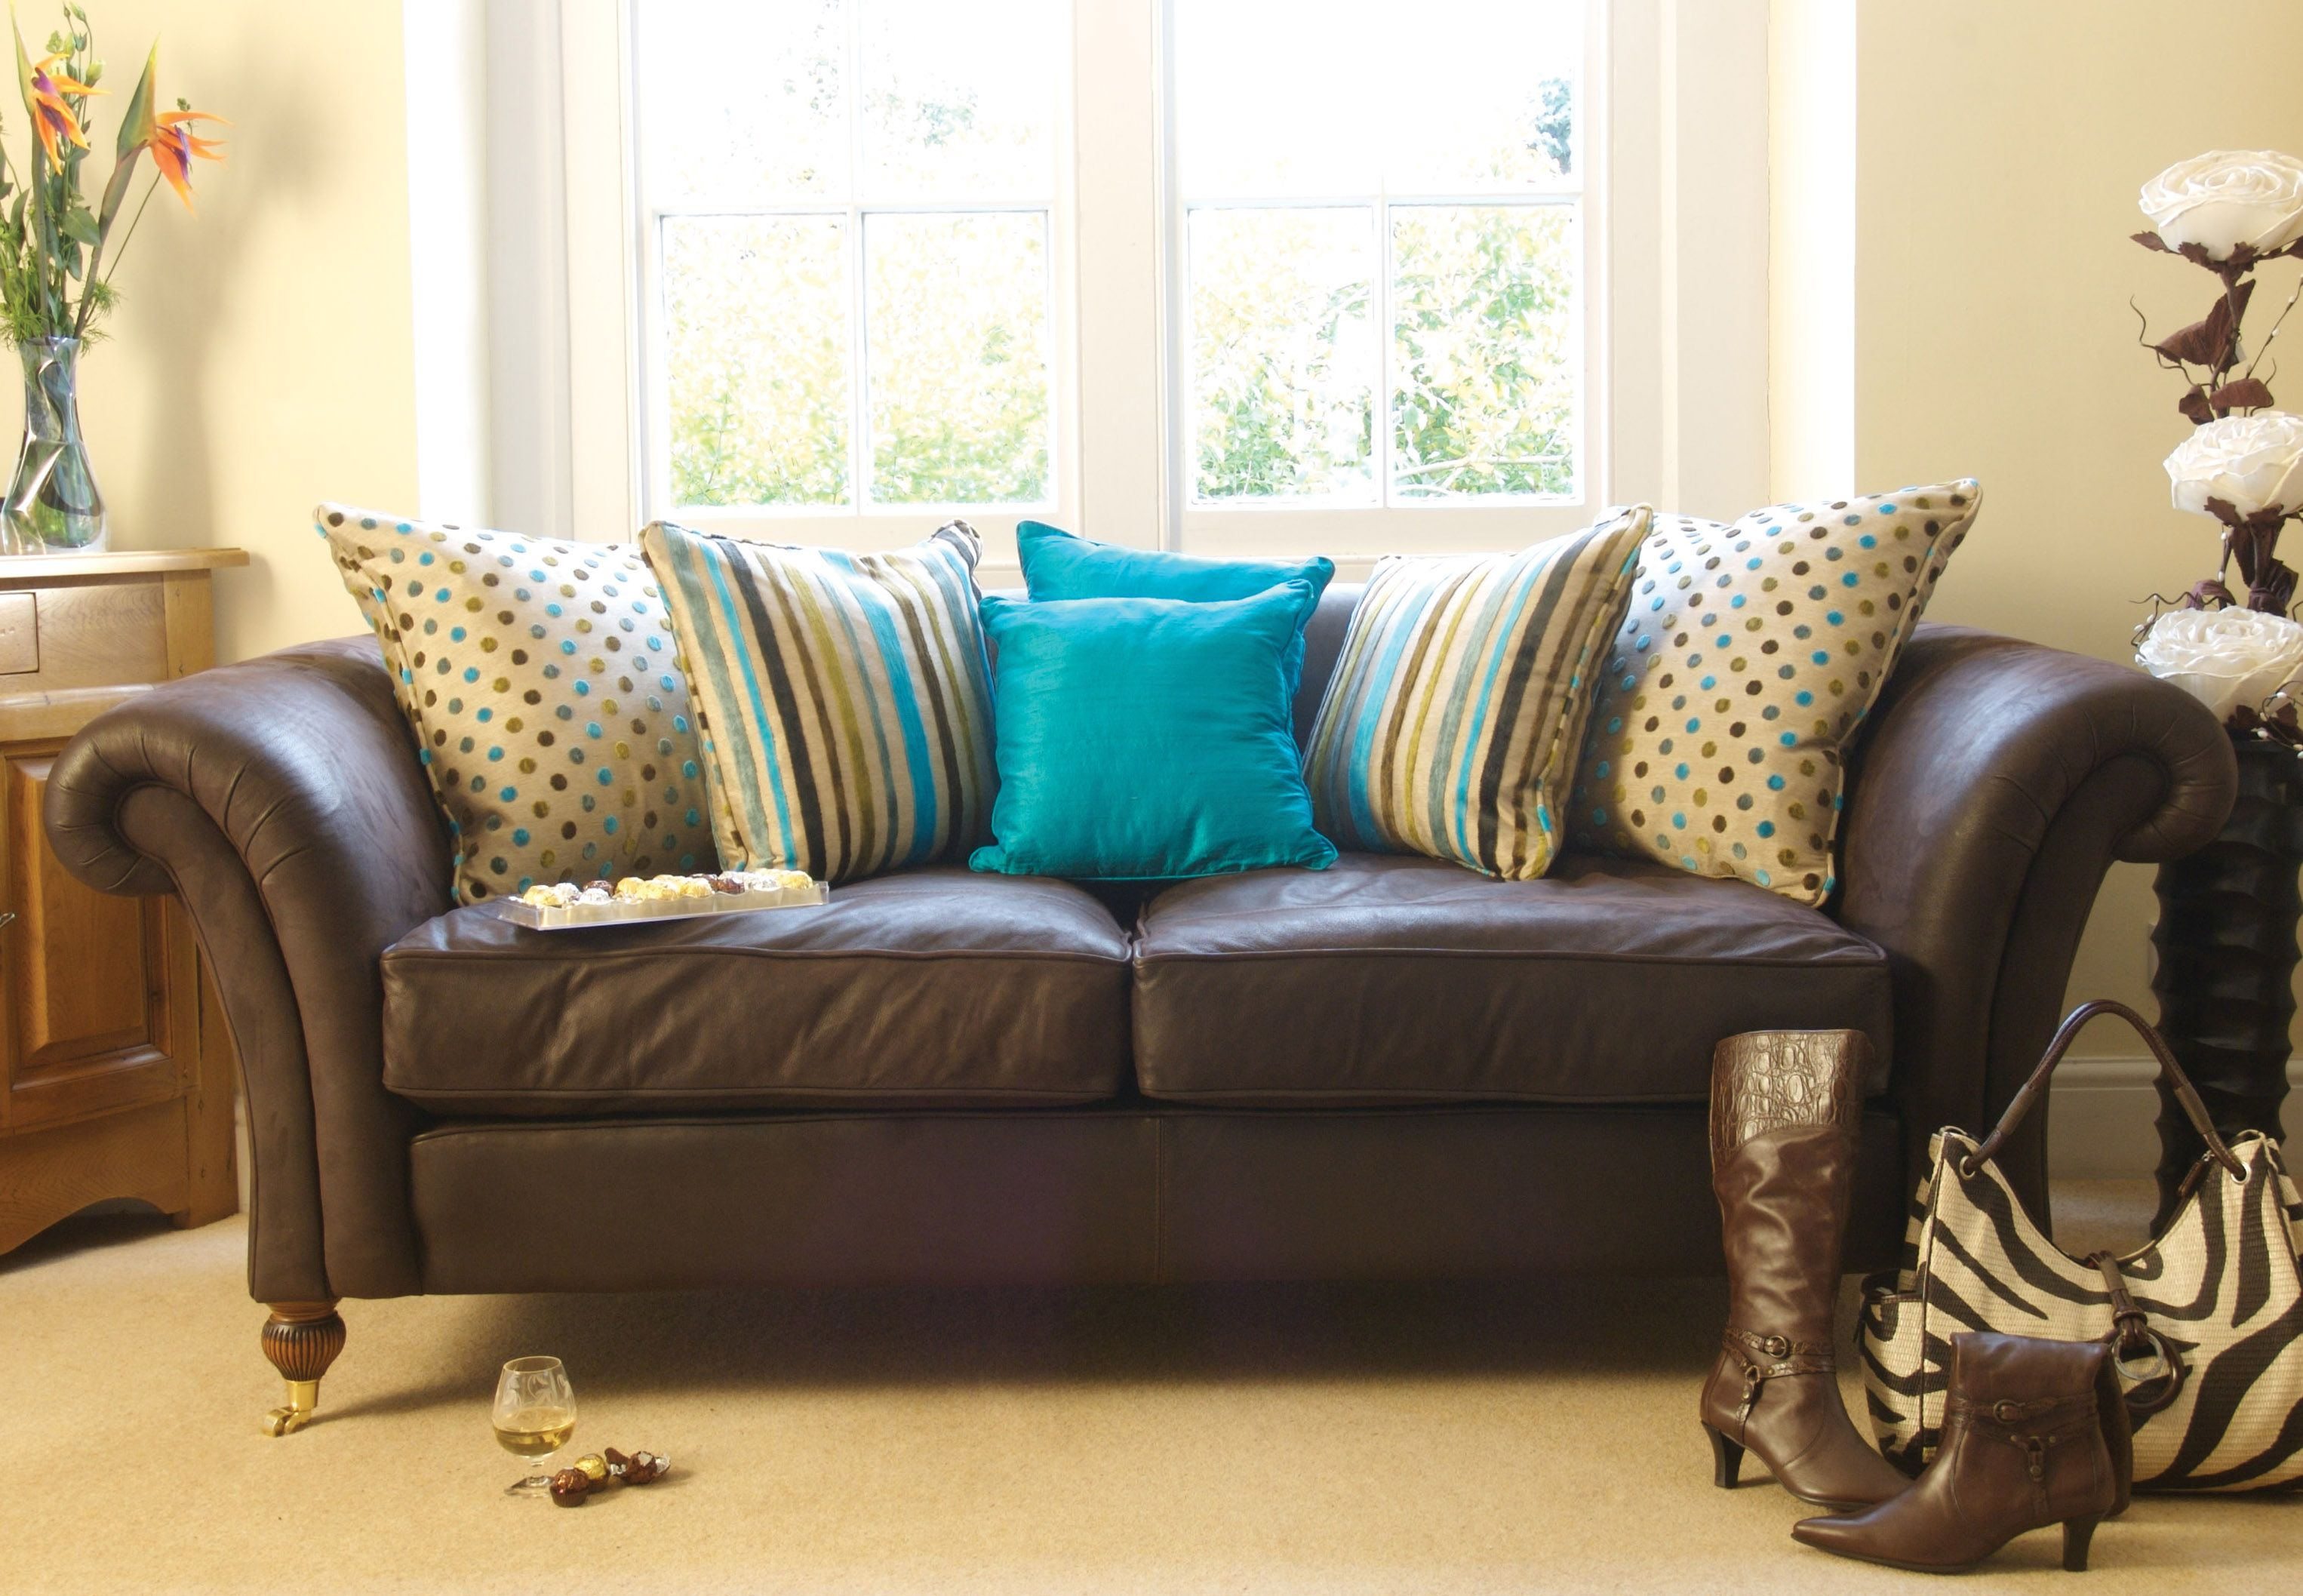 Best Turquoise On Brown Sofa For My Home Pinterest Brown 400 x 300